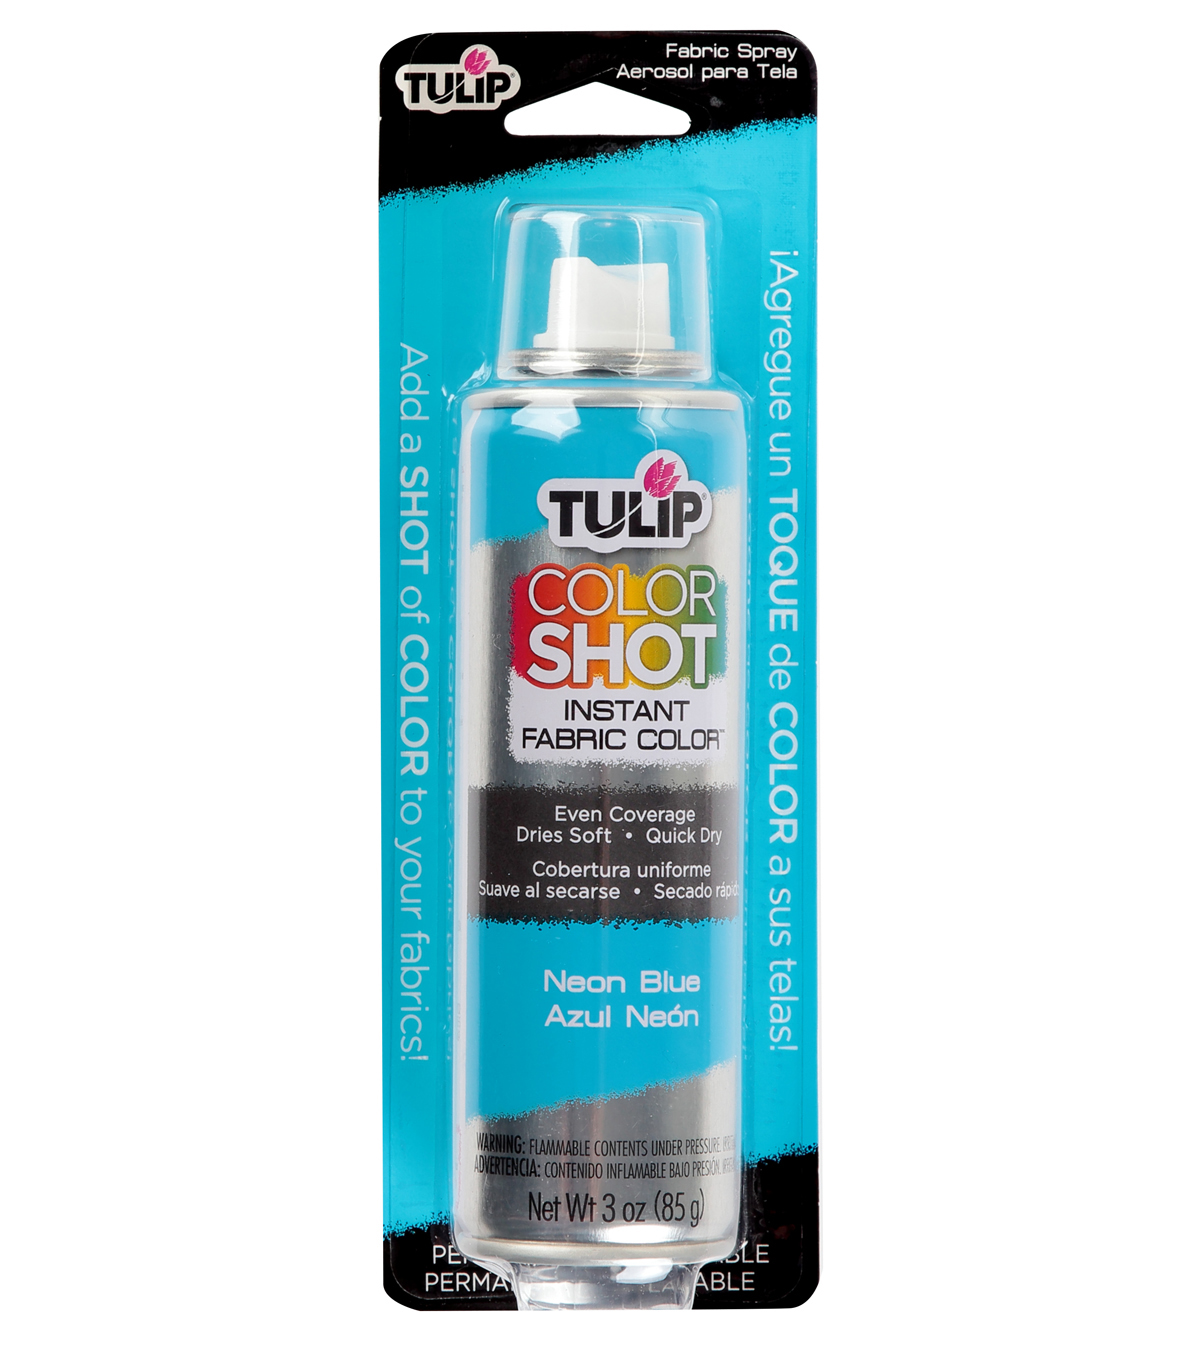 Tulip ColorShot Instant Fabric Color Spray 3oz, Neon Blue